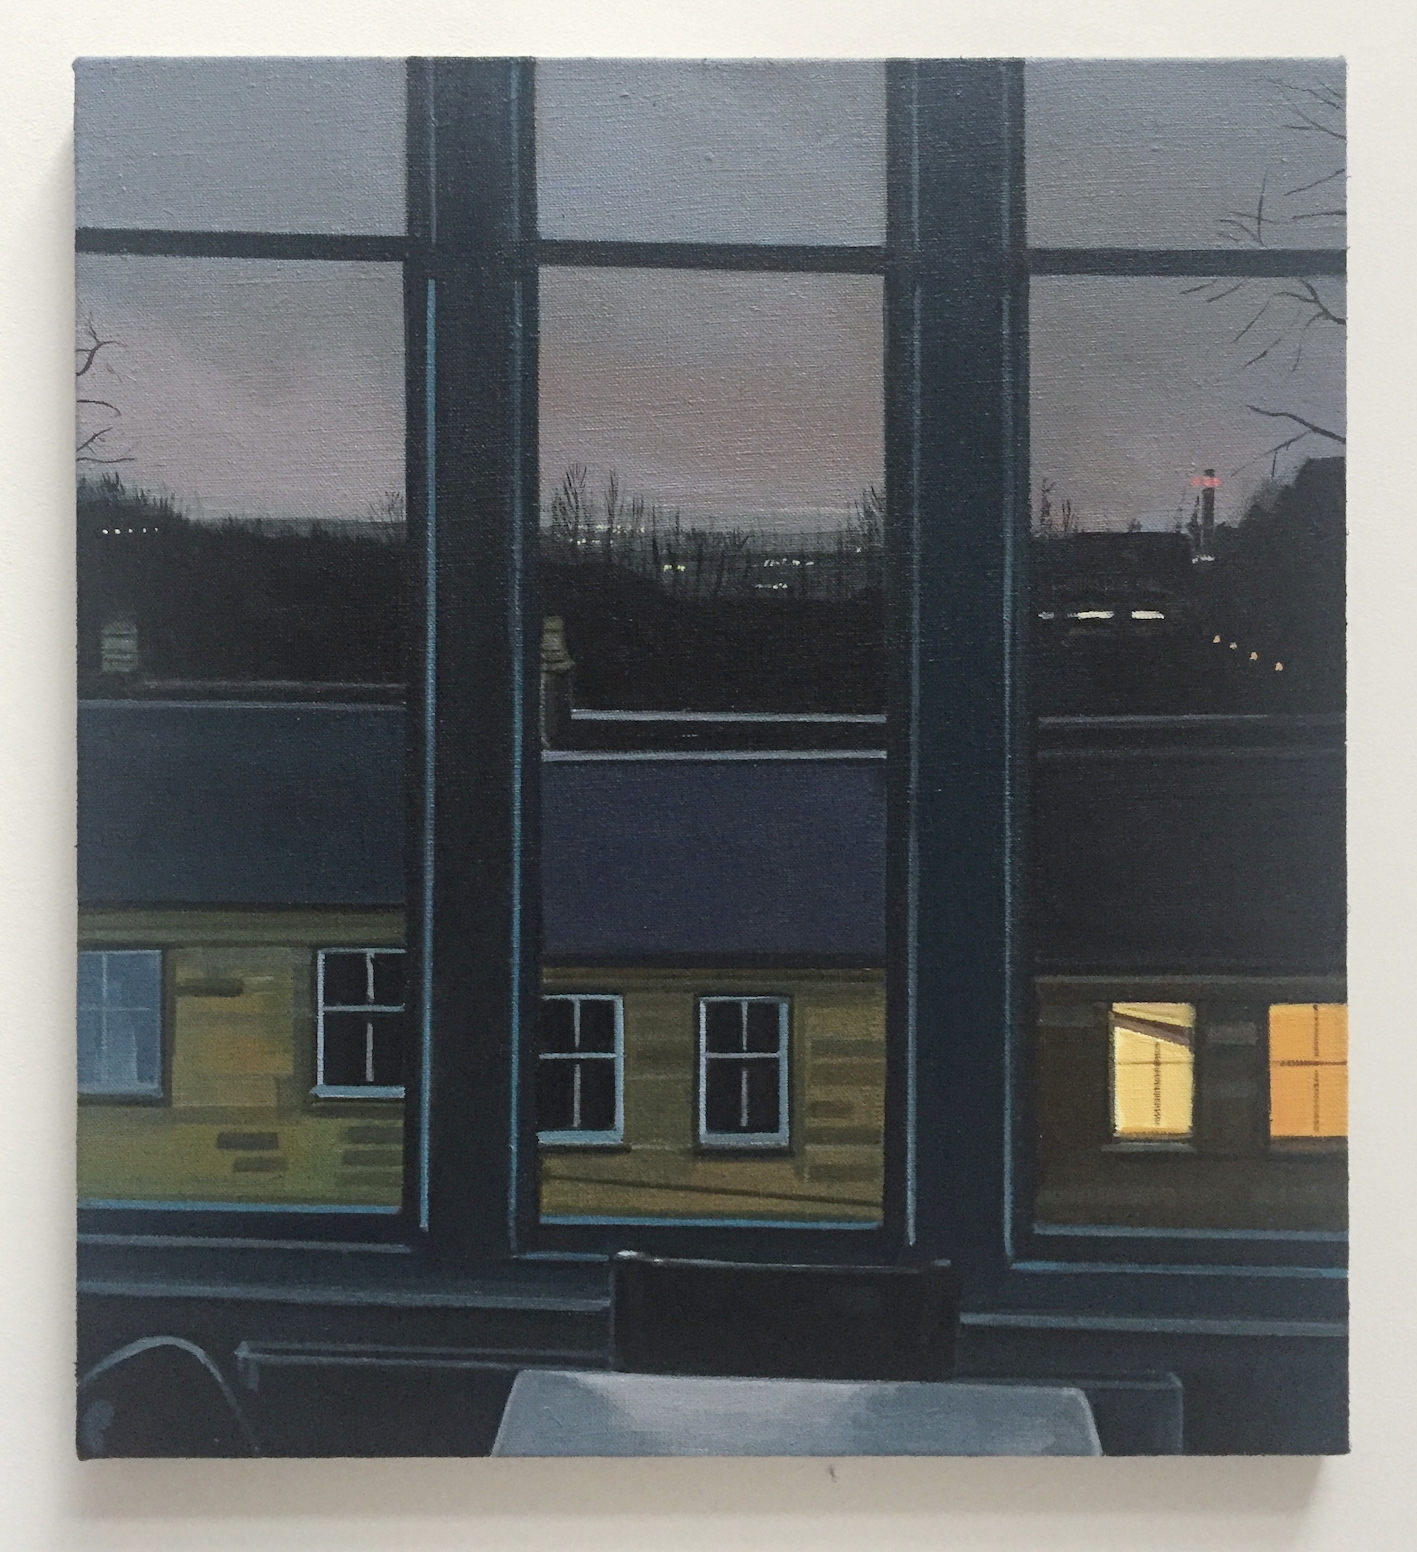 Wilton St. Window 5 , December 2017, 22 x 20 inches, acrylic on linen.